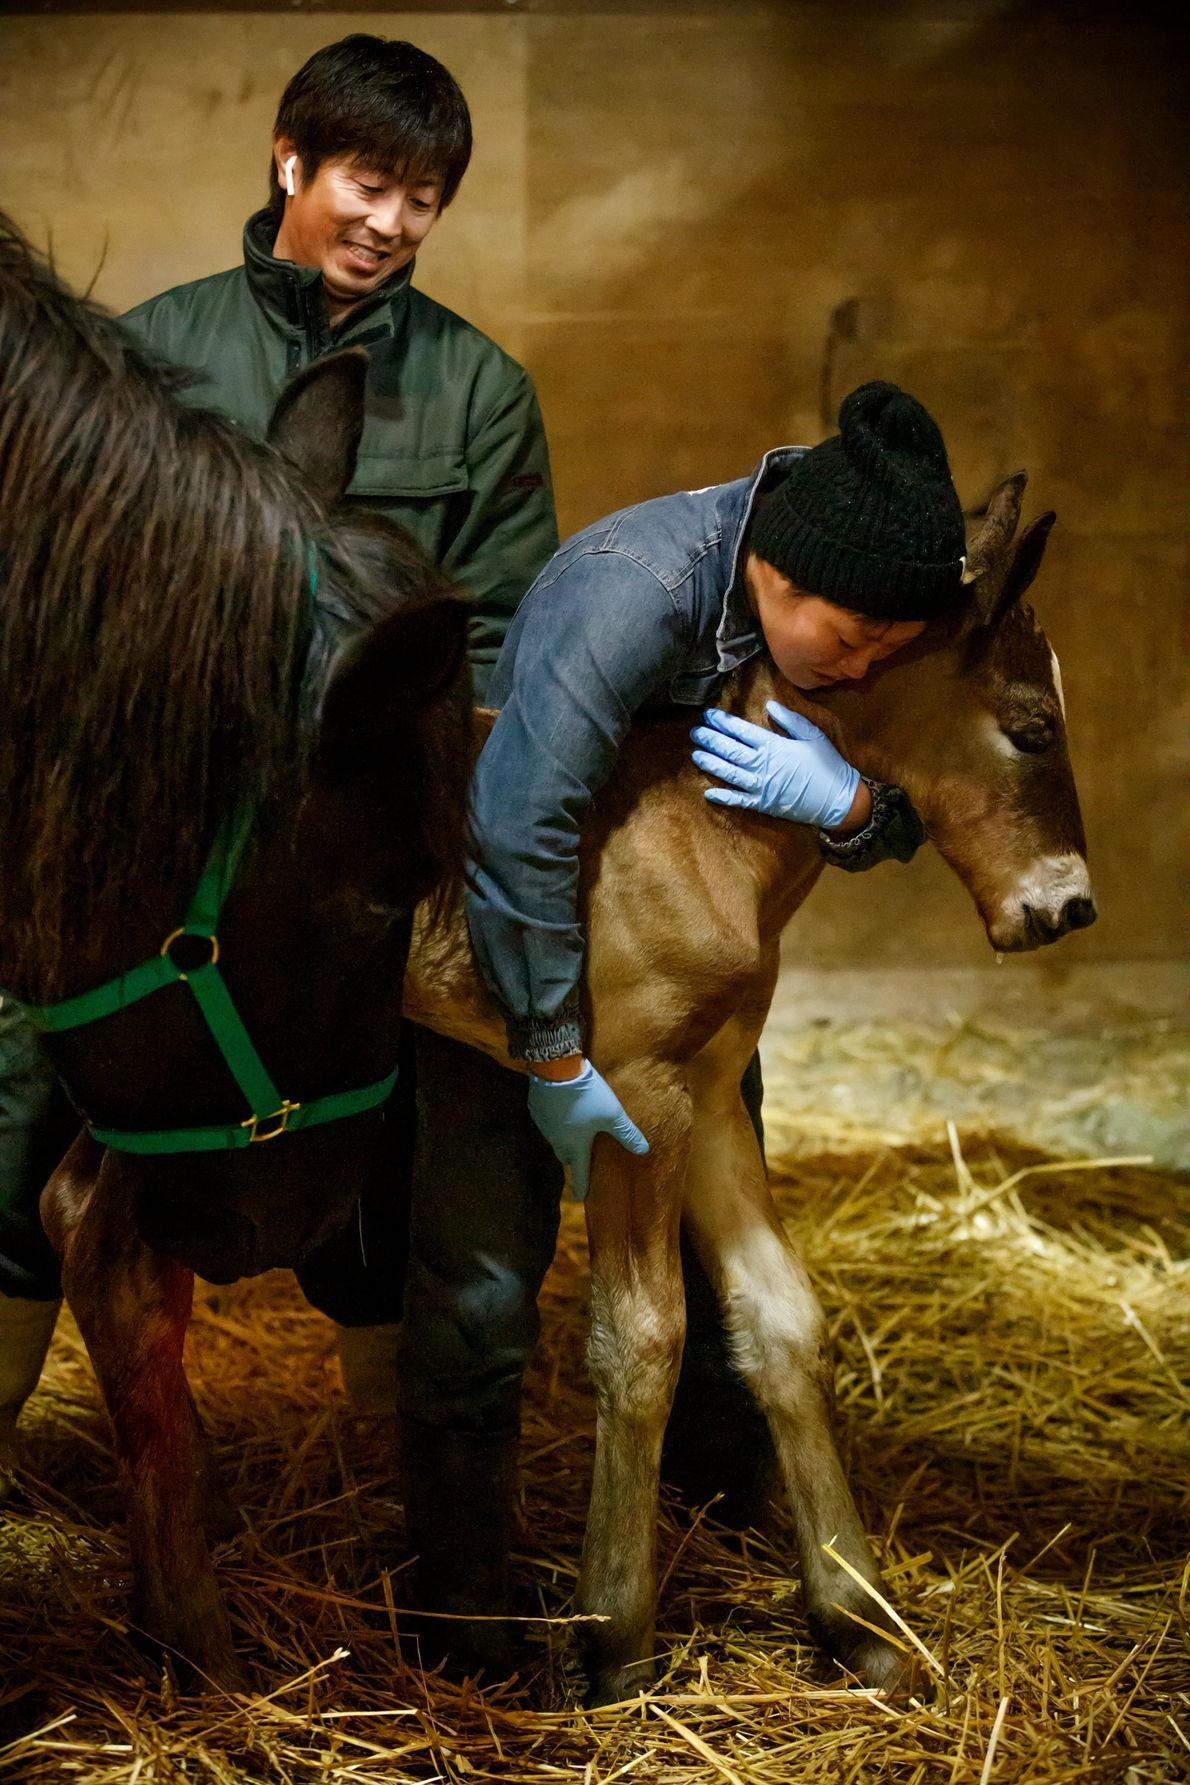 Your Shot photographer Michiyoshi Kokubo photographed people as they help a foal after just being born.